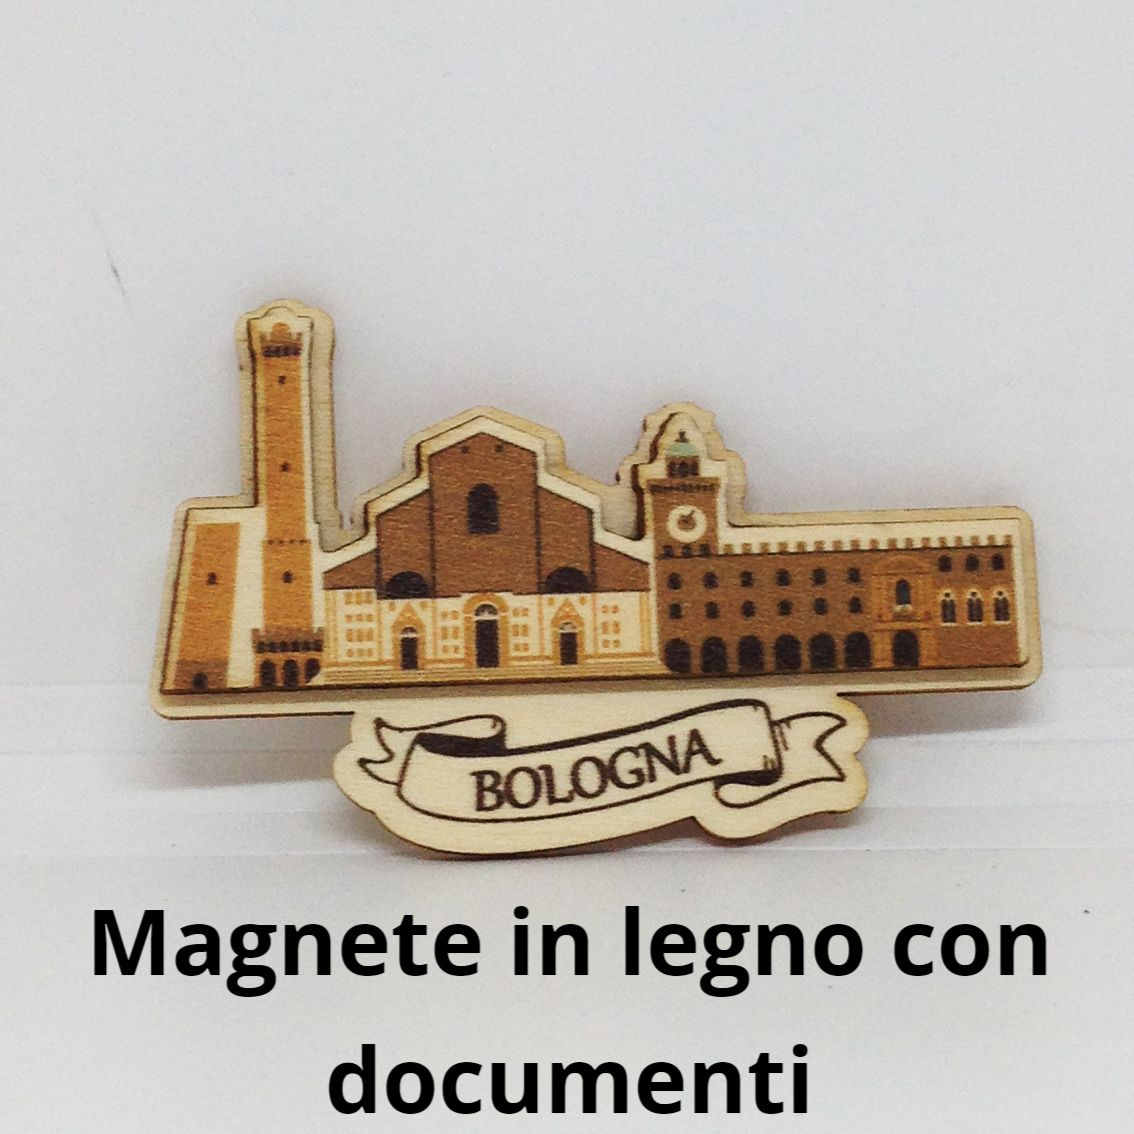 Magnete in legno con documenti